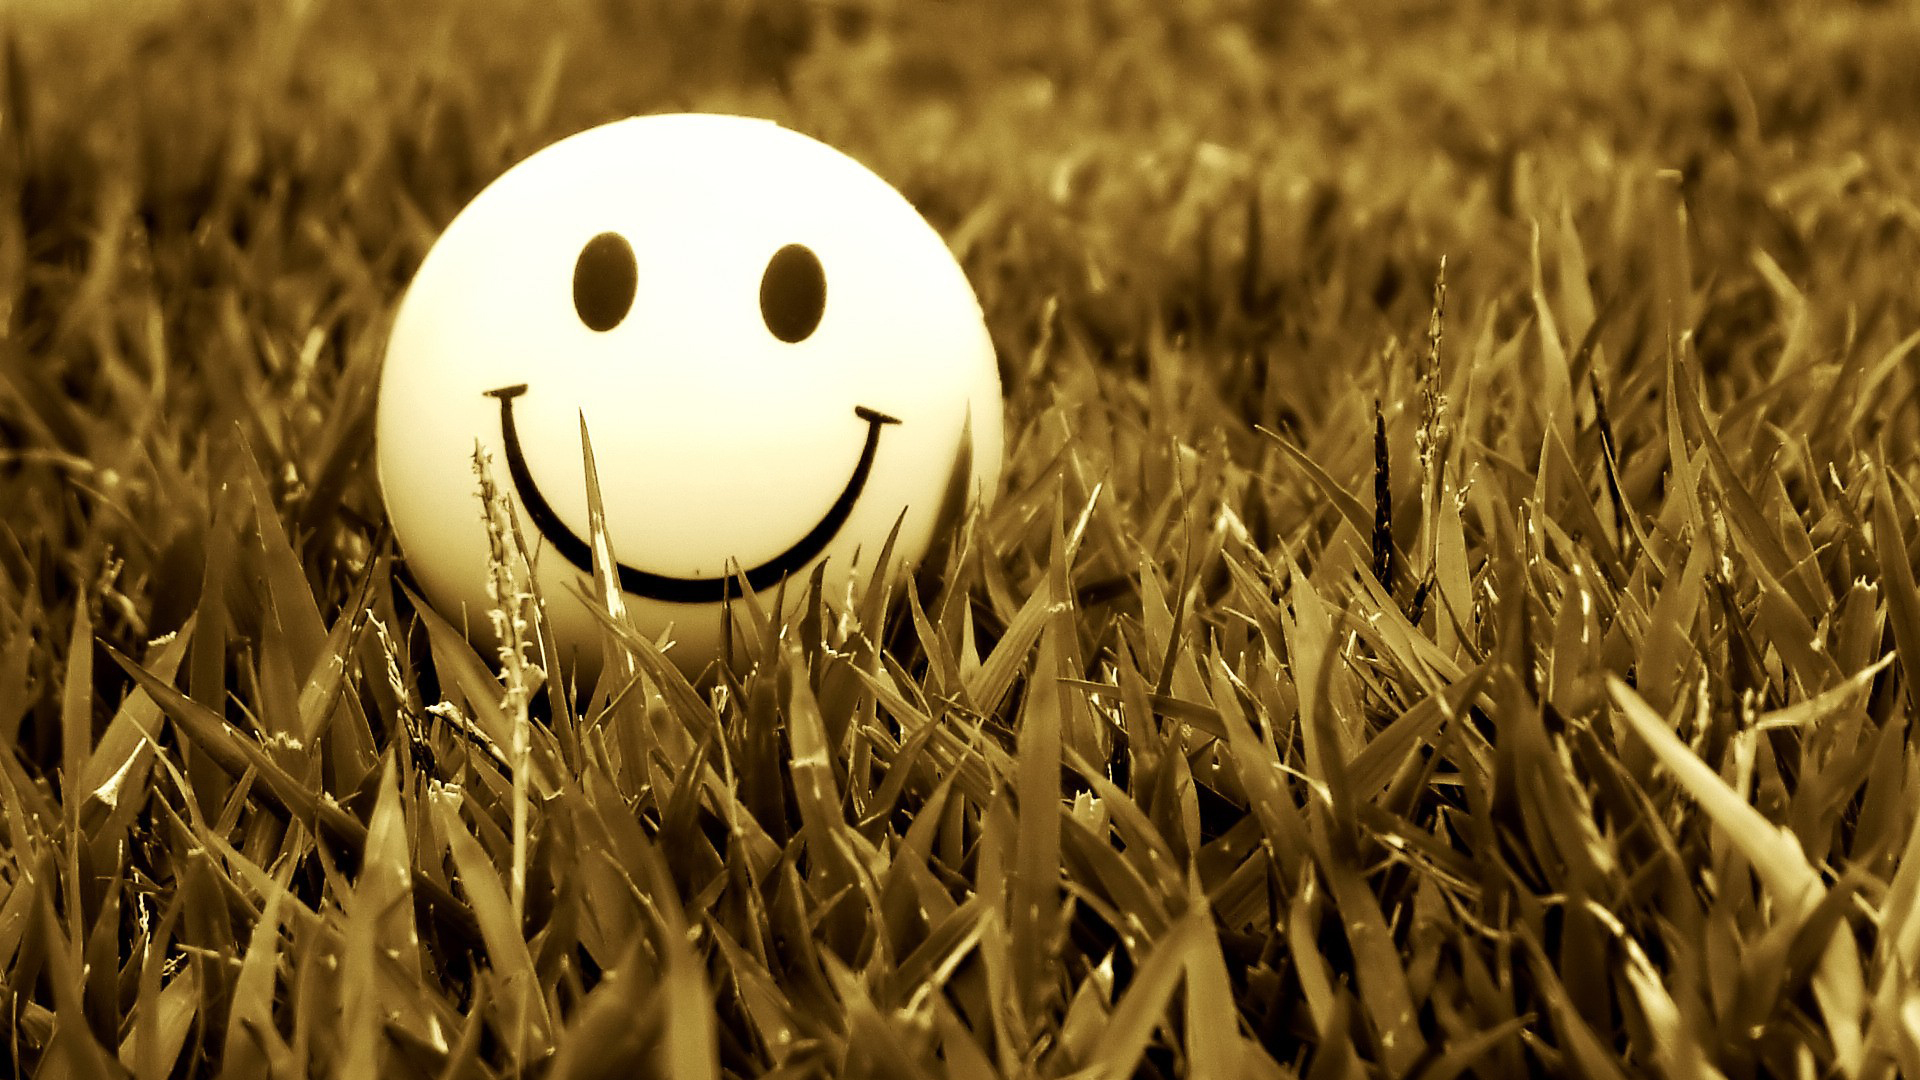 Hd Smiley Face Wallpaper: Smiley Full HD Wallpaper And Achtergrond